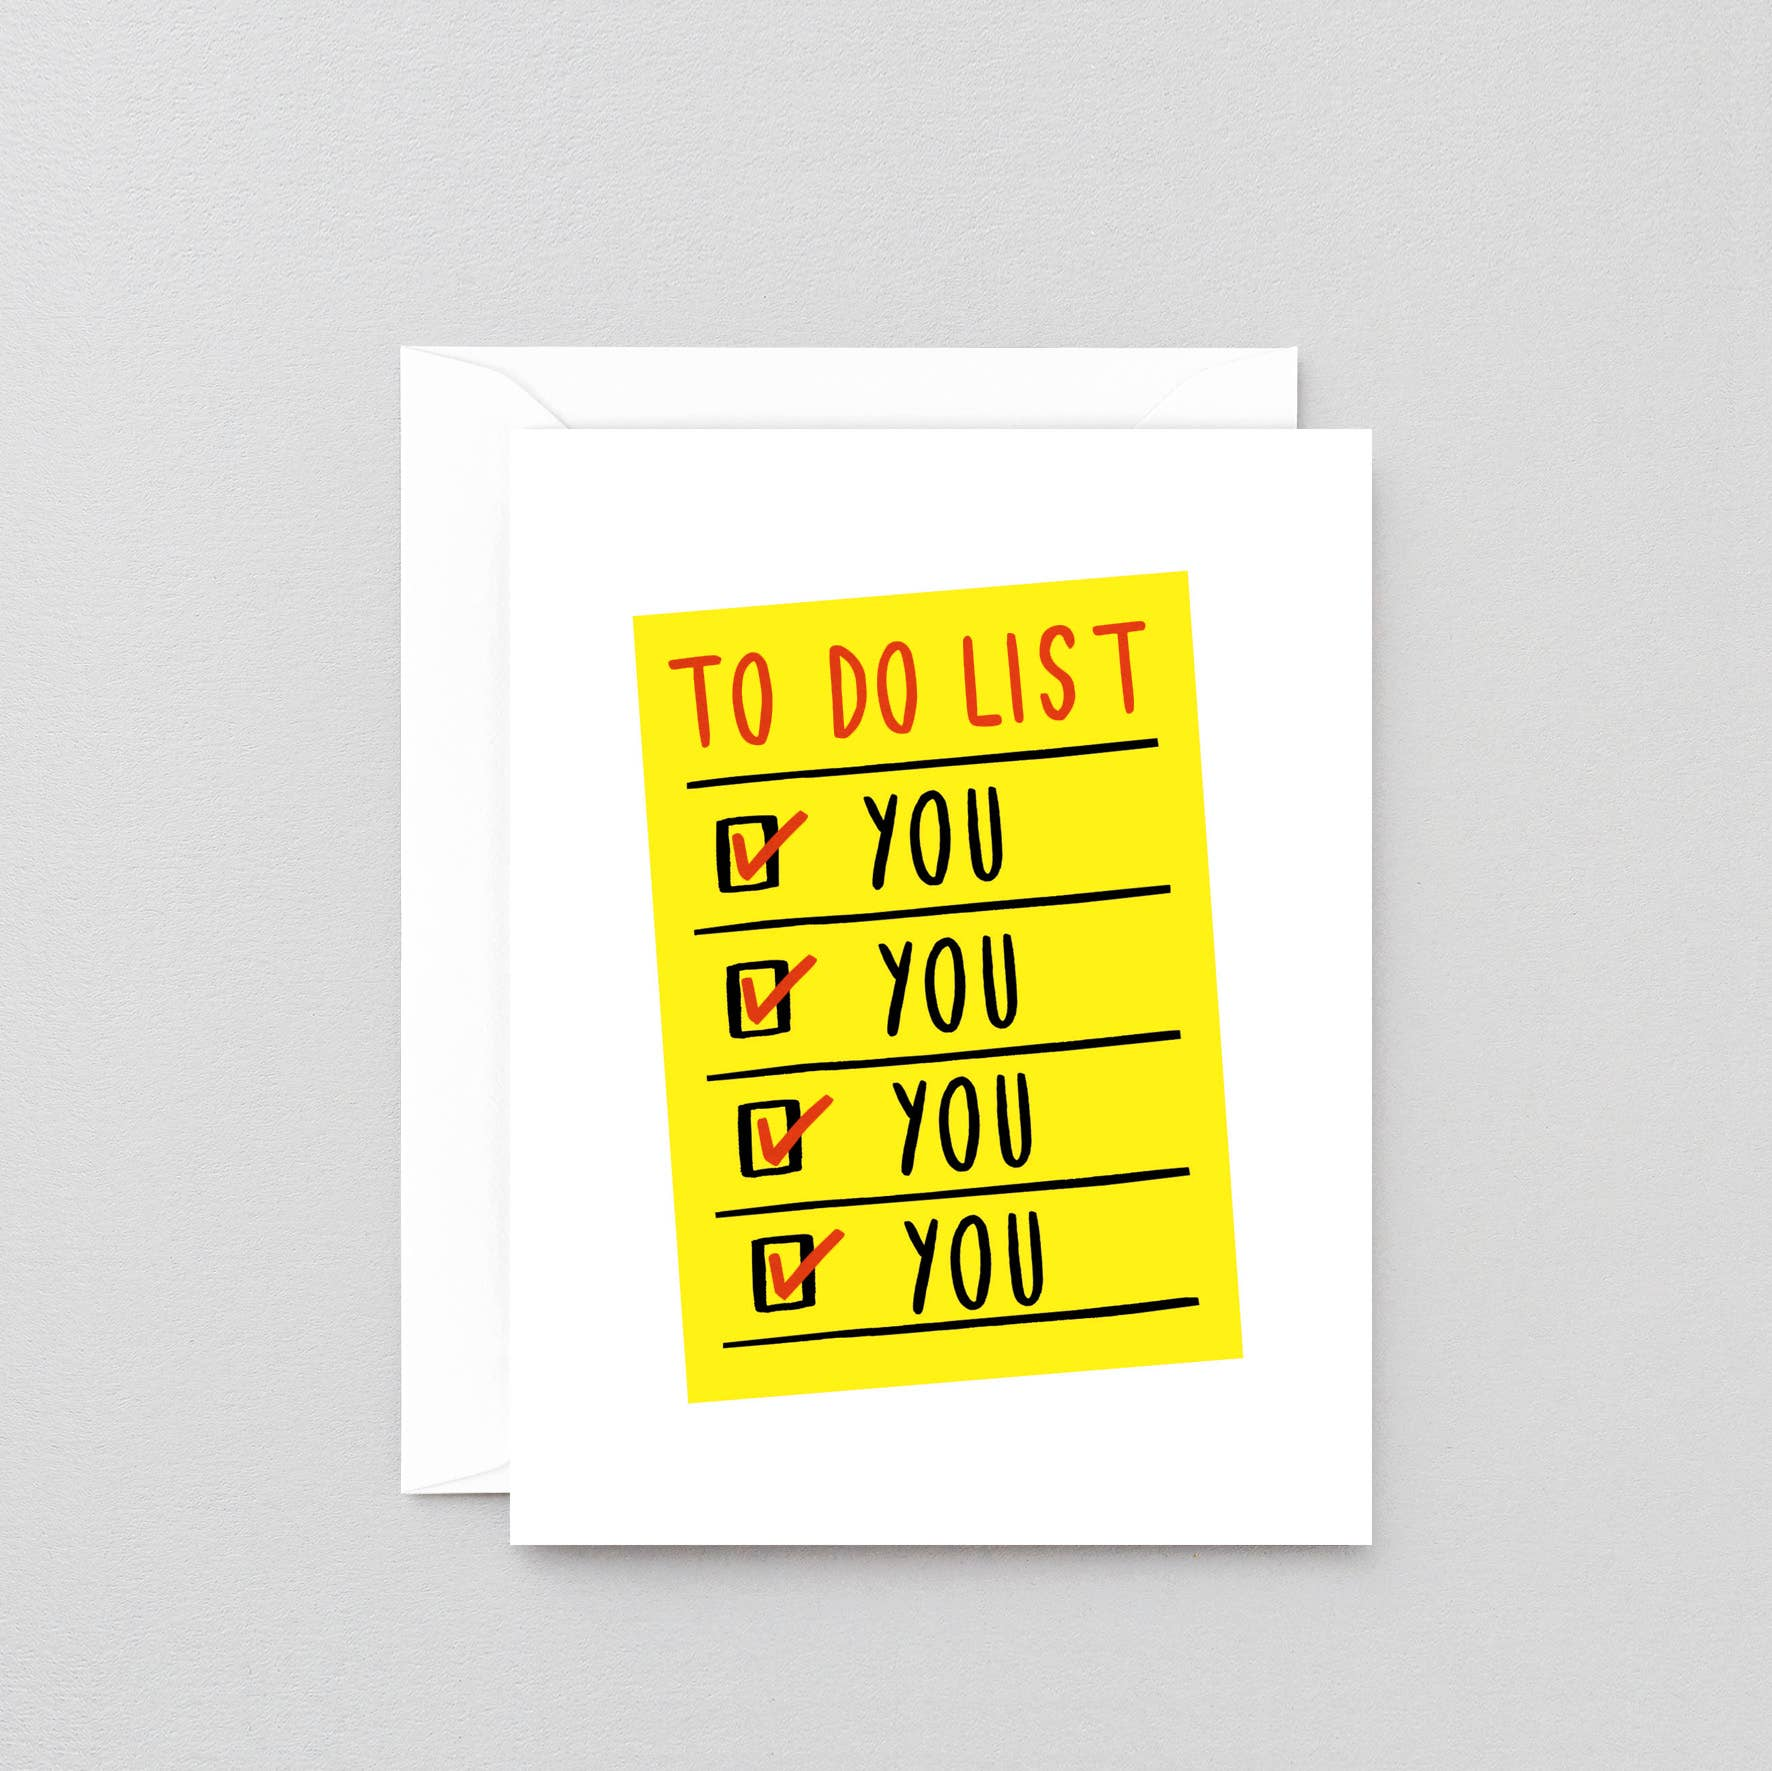 'To Do List' Greetings Card